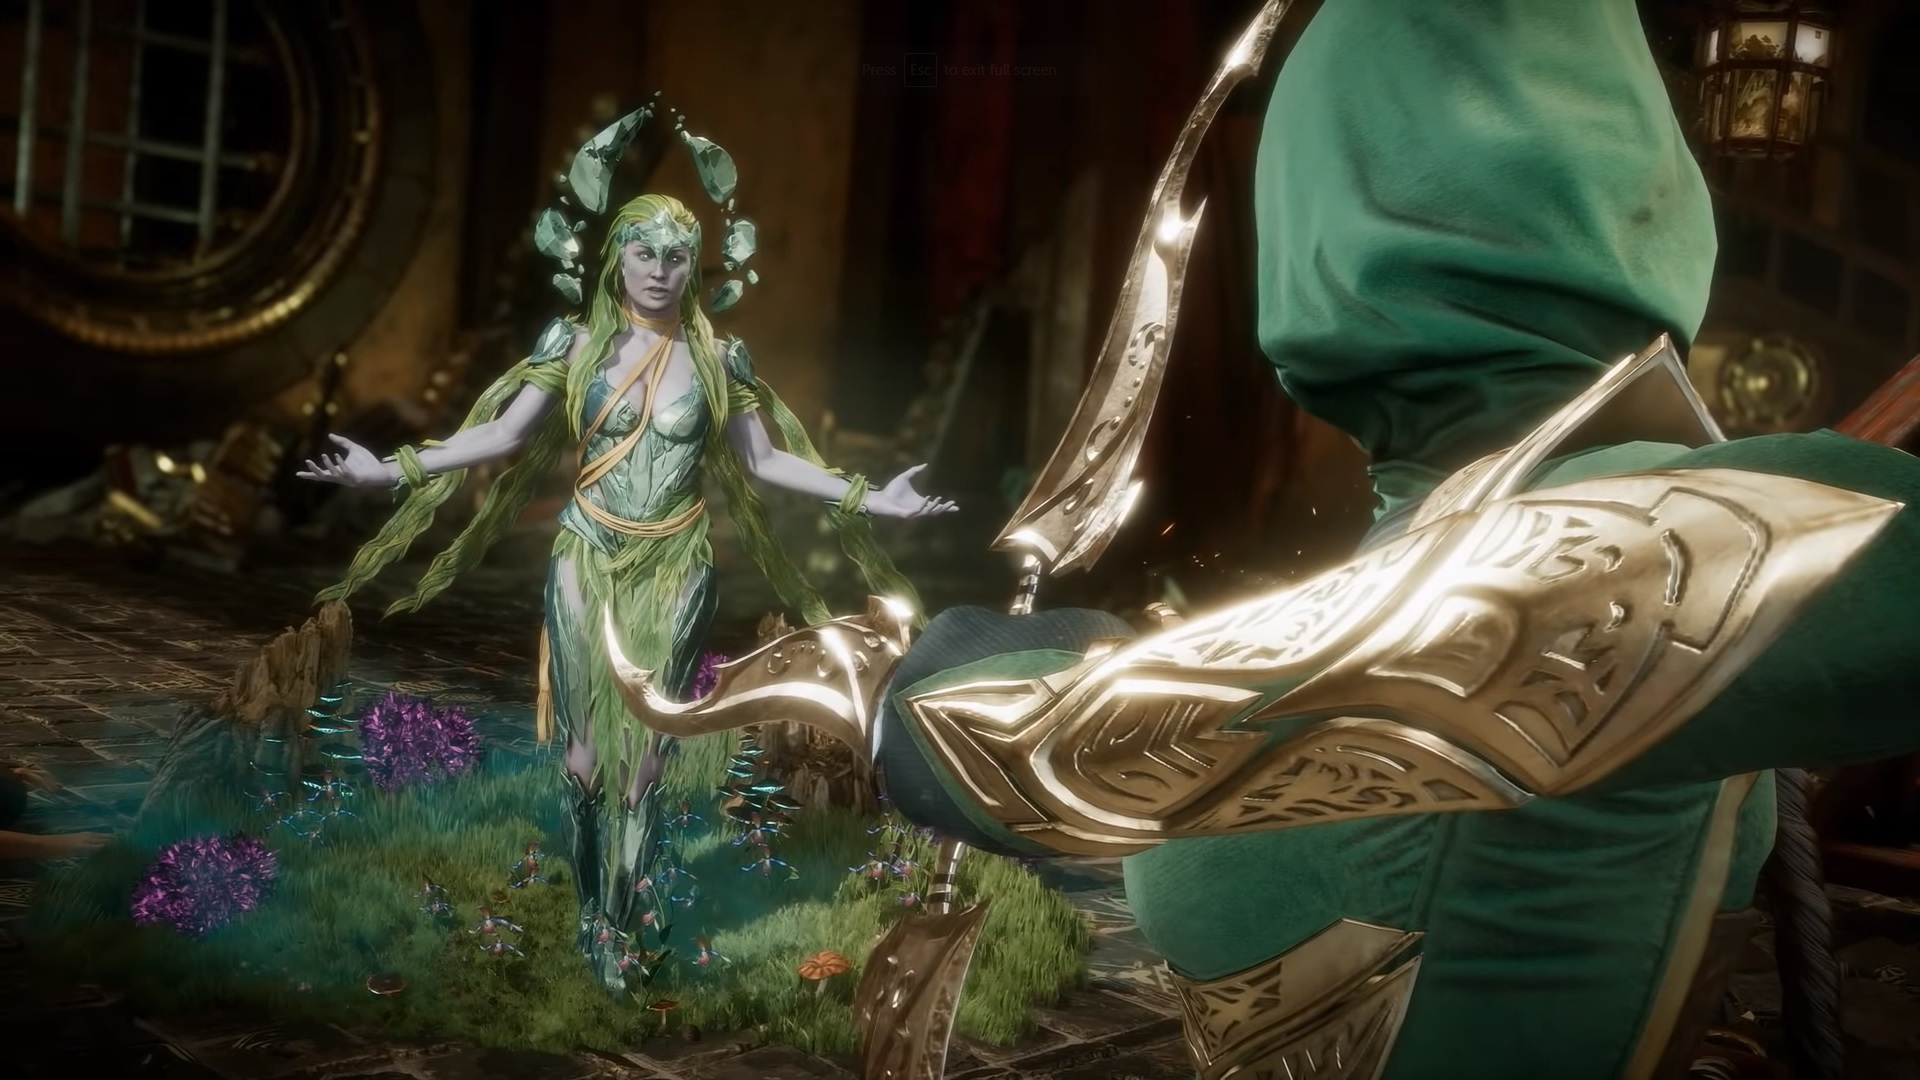 Mortal Kombat 11 Cetrion Gameplay and Character Selection